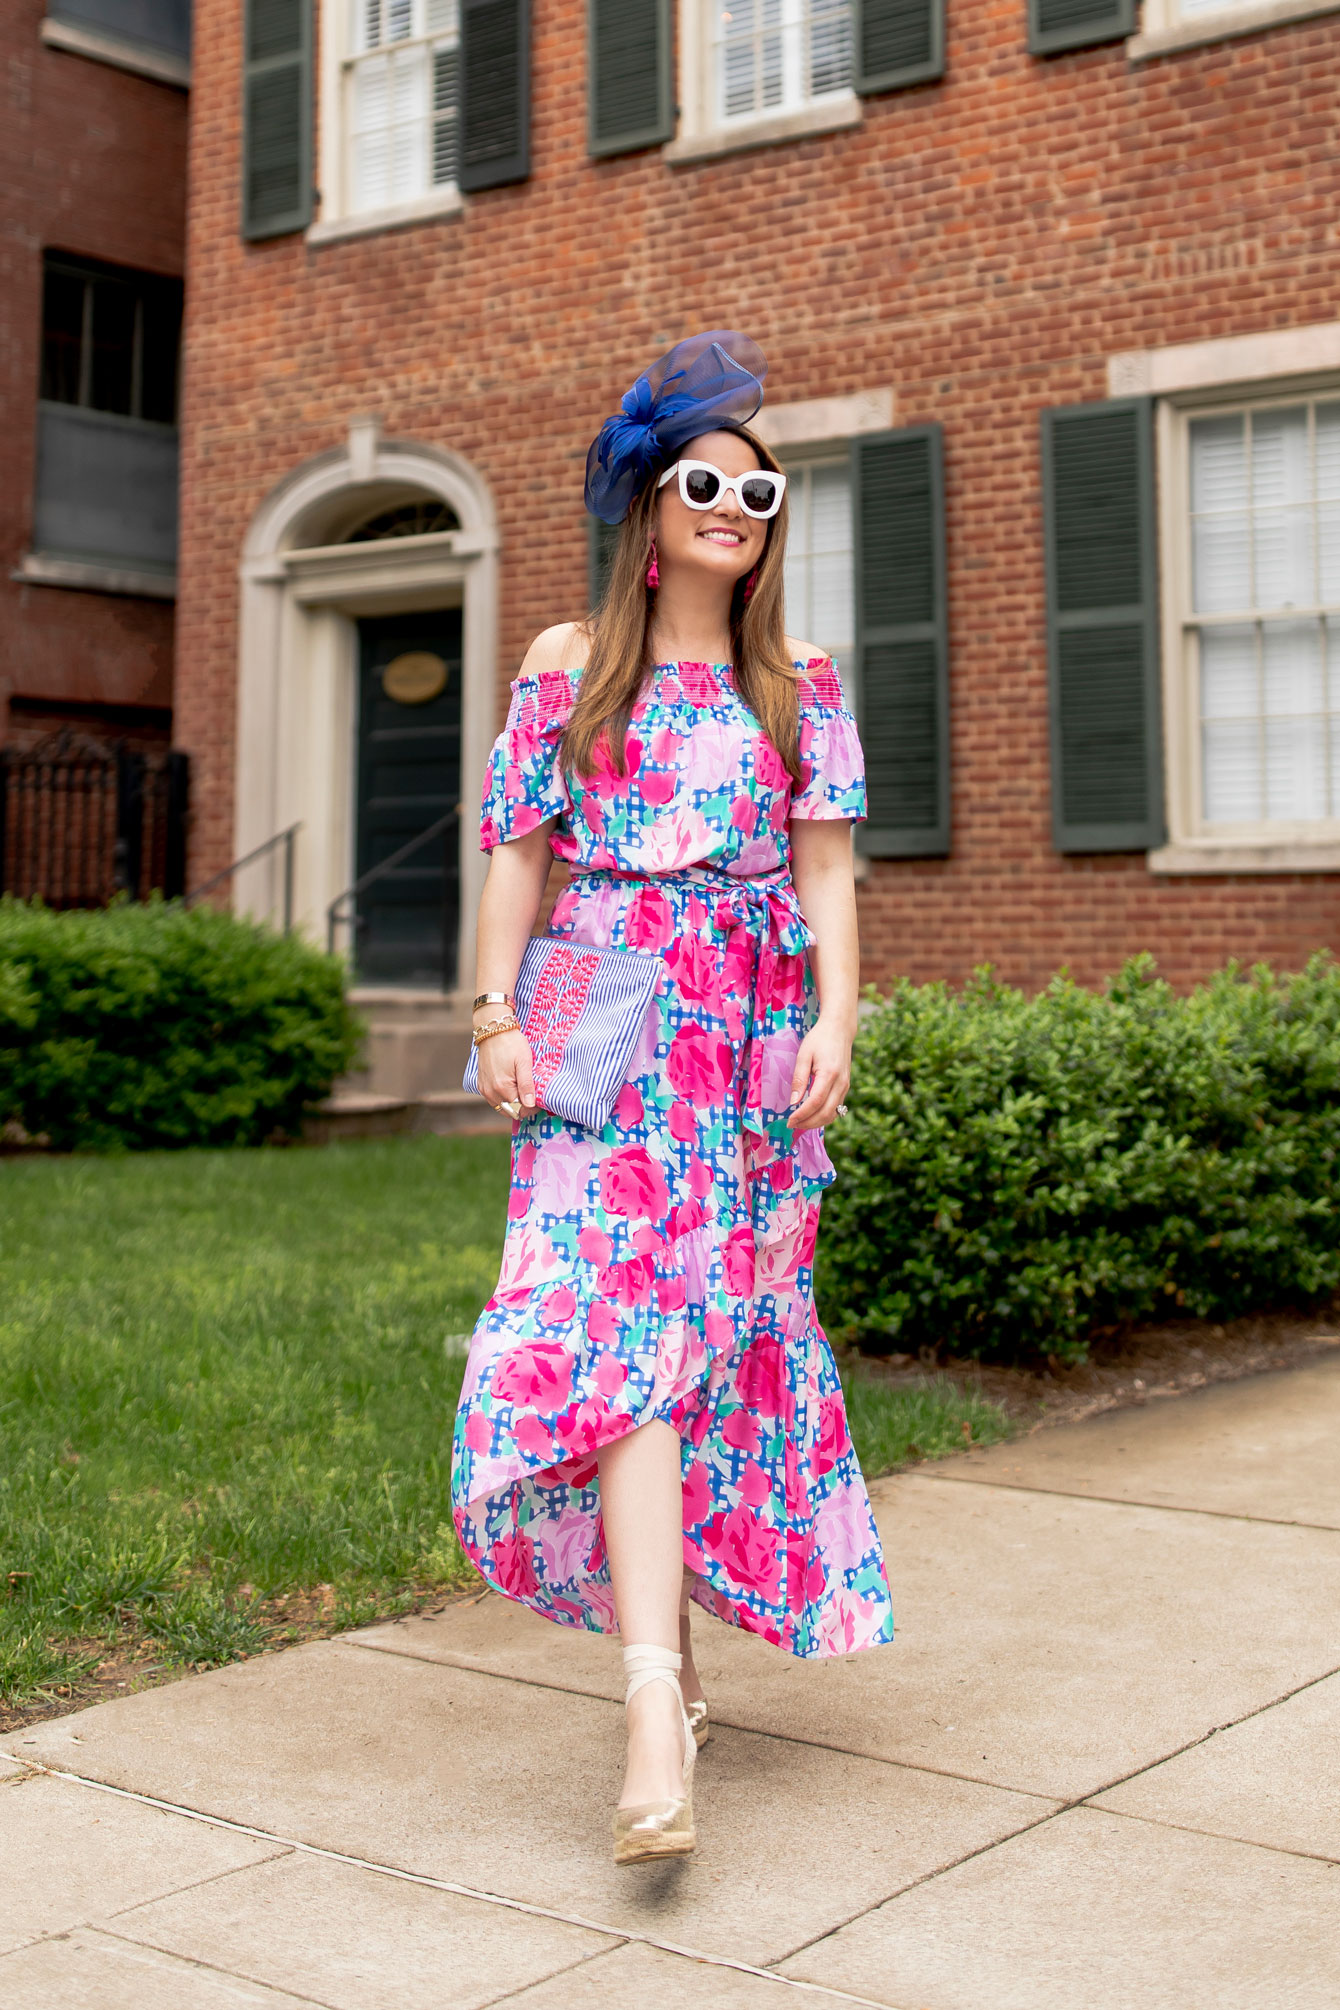 Jennifer Lake Vineyard Vines Kentucky Derby